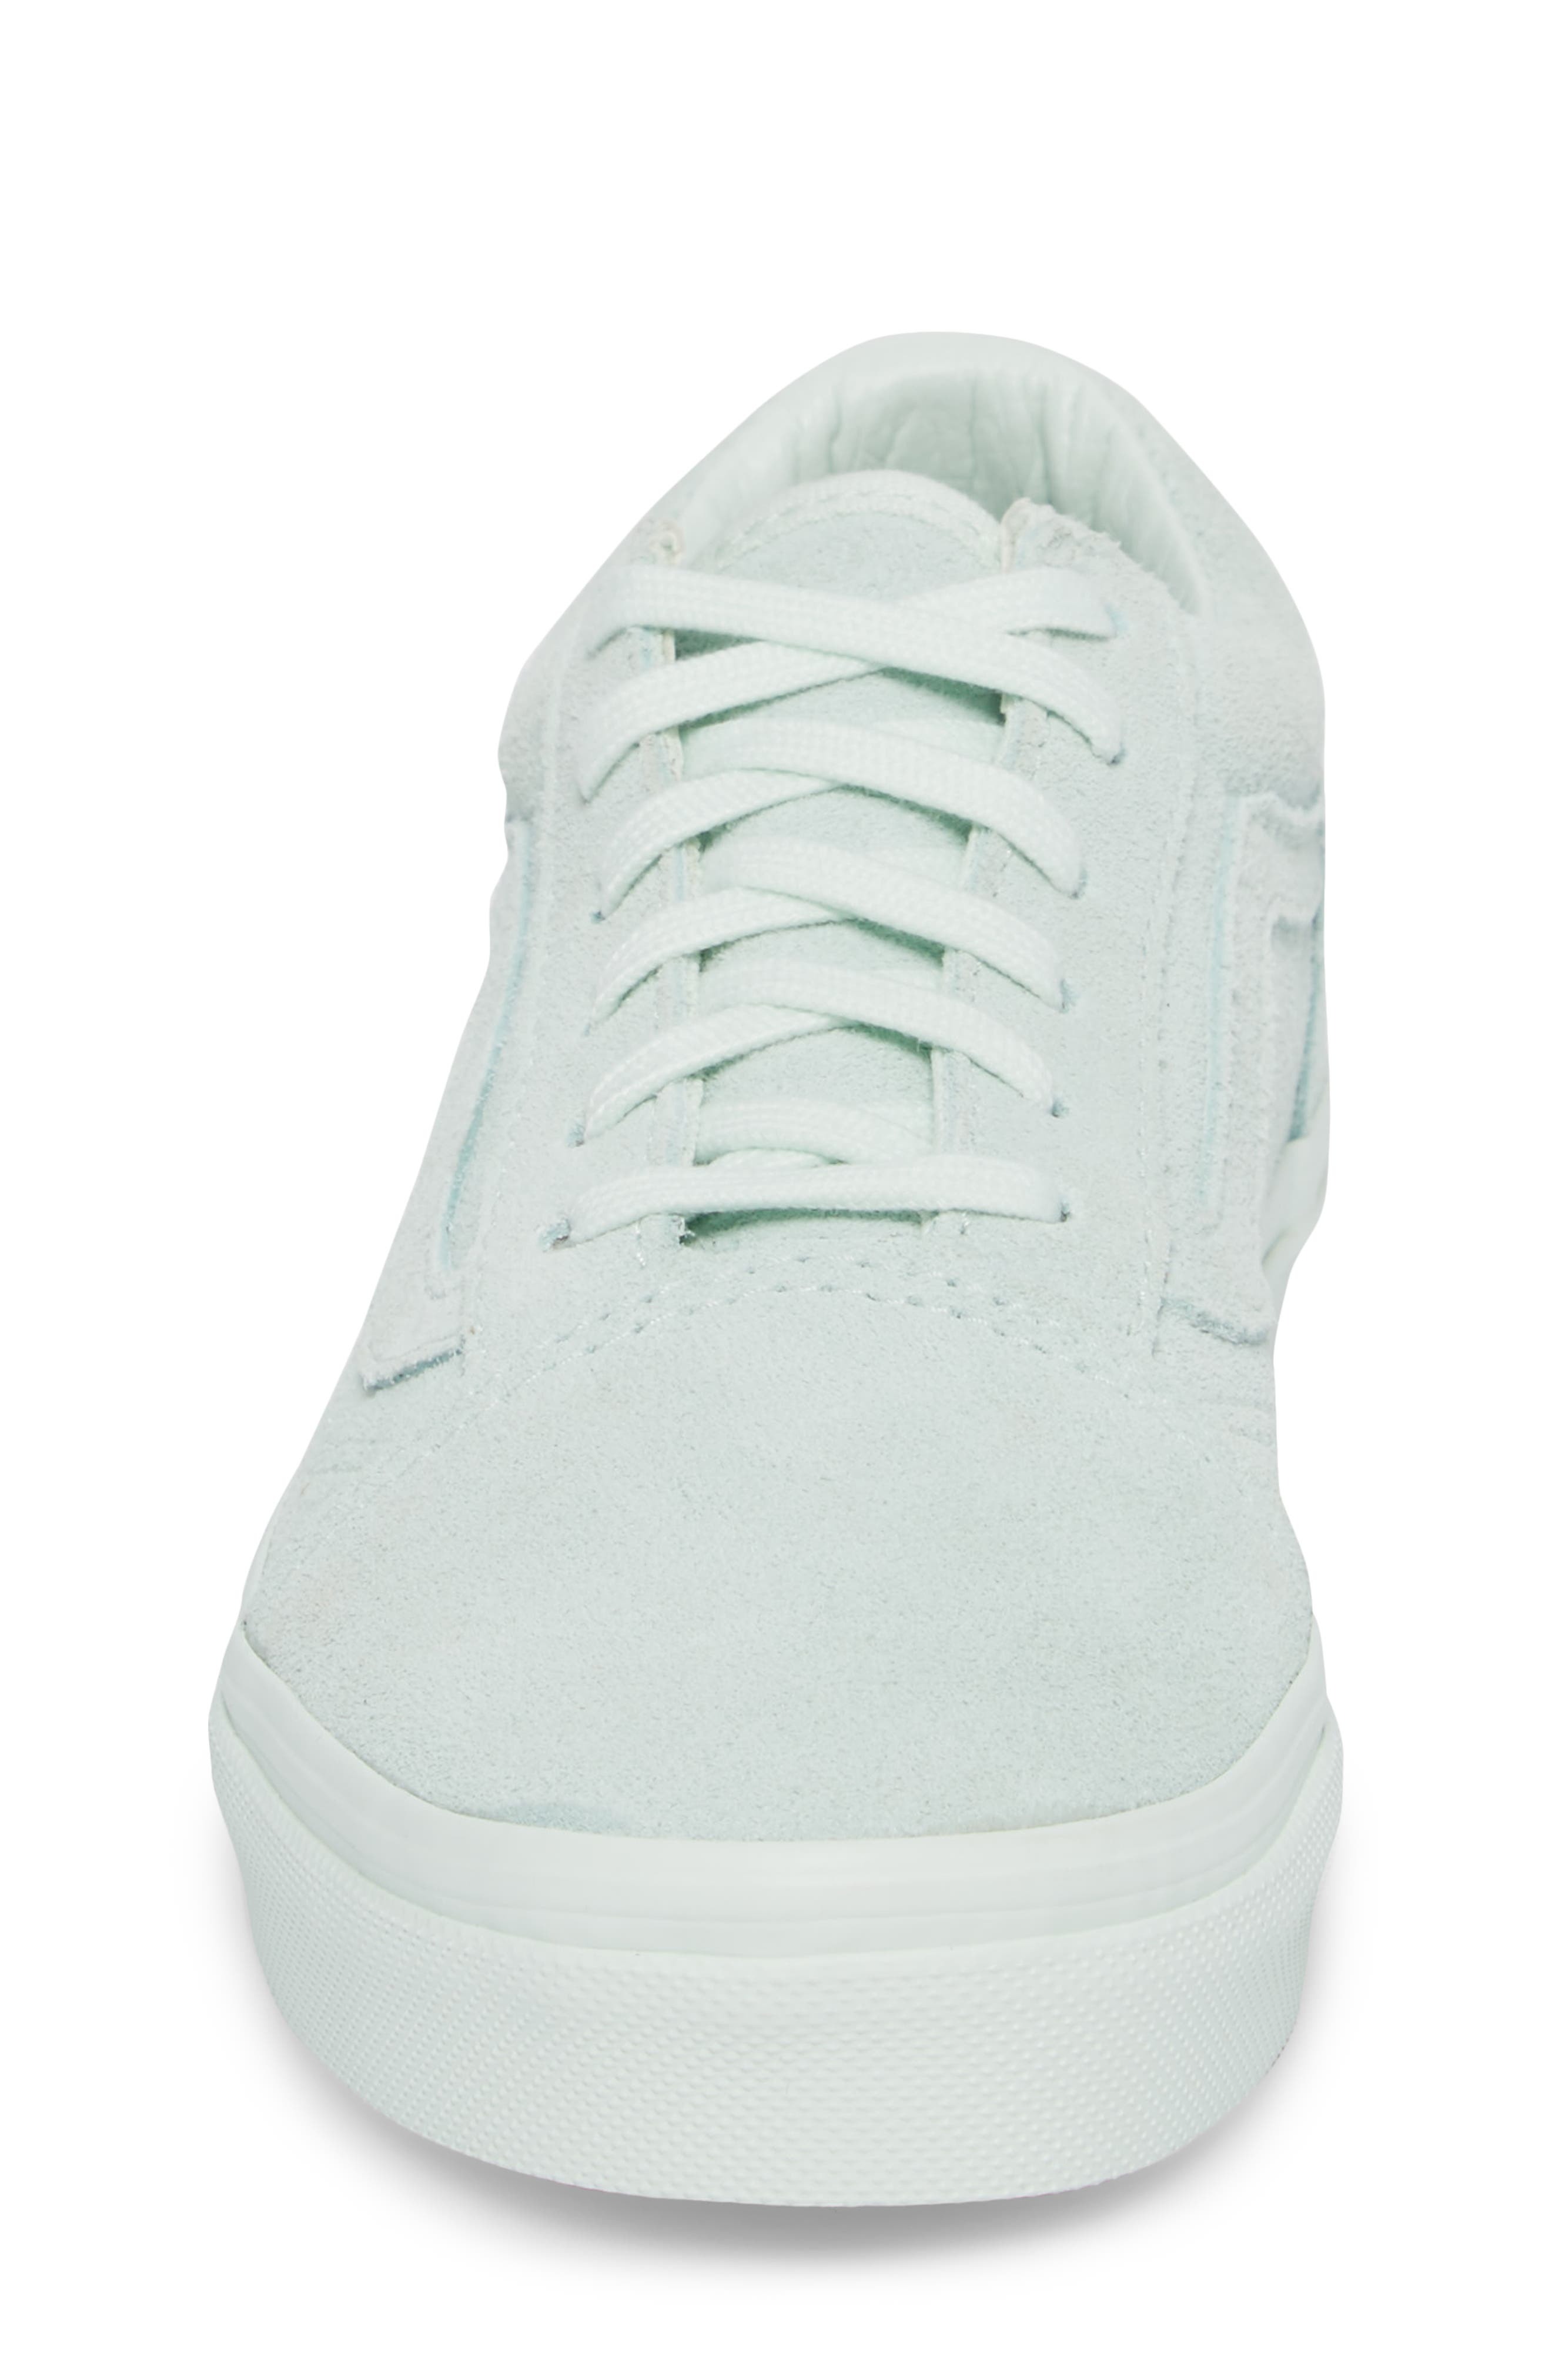 Old Skool Low Top Sneaker,                             Alternate thumbnail 4, color,                             Suede Mono/ Aqua Glass